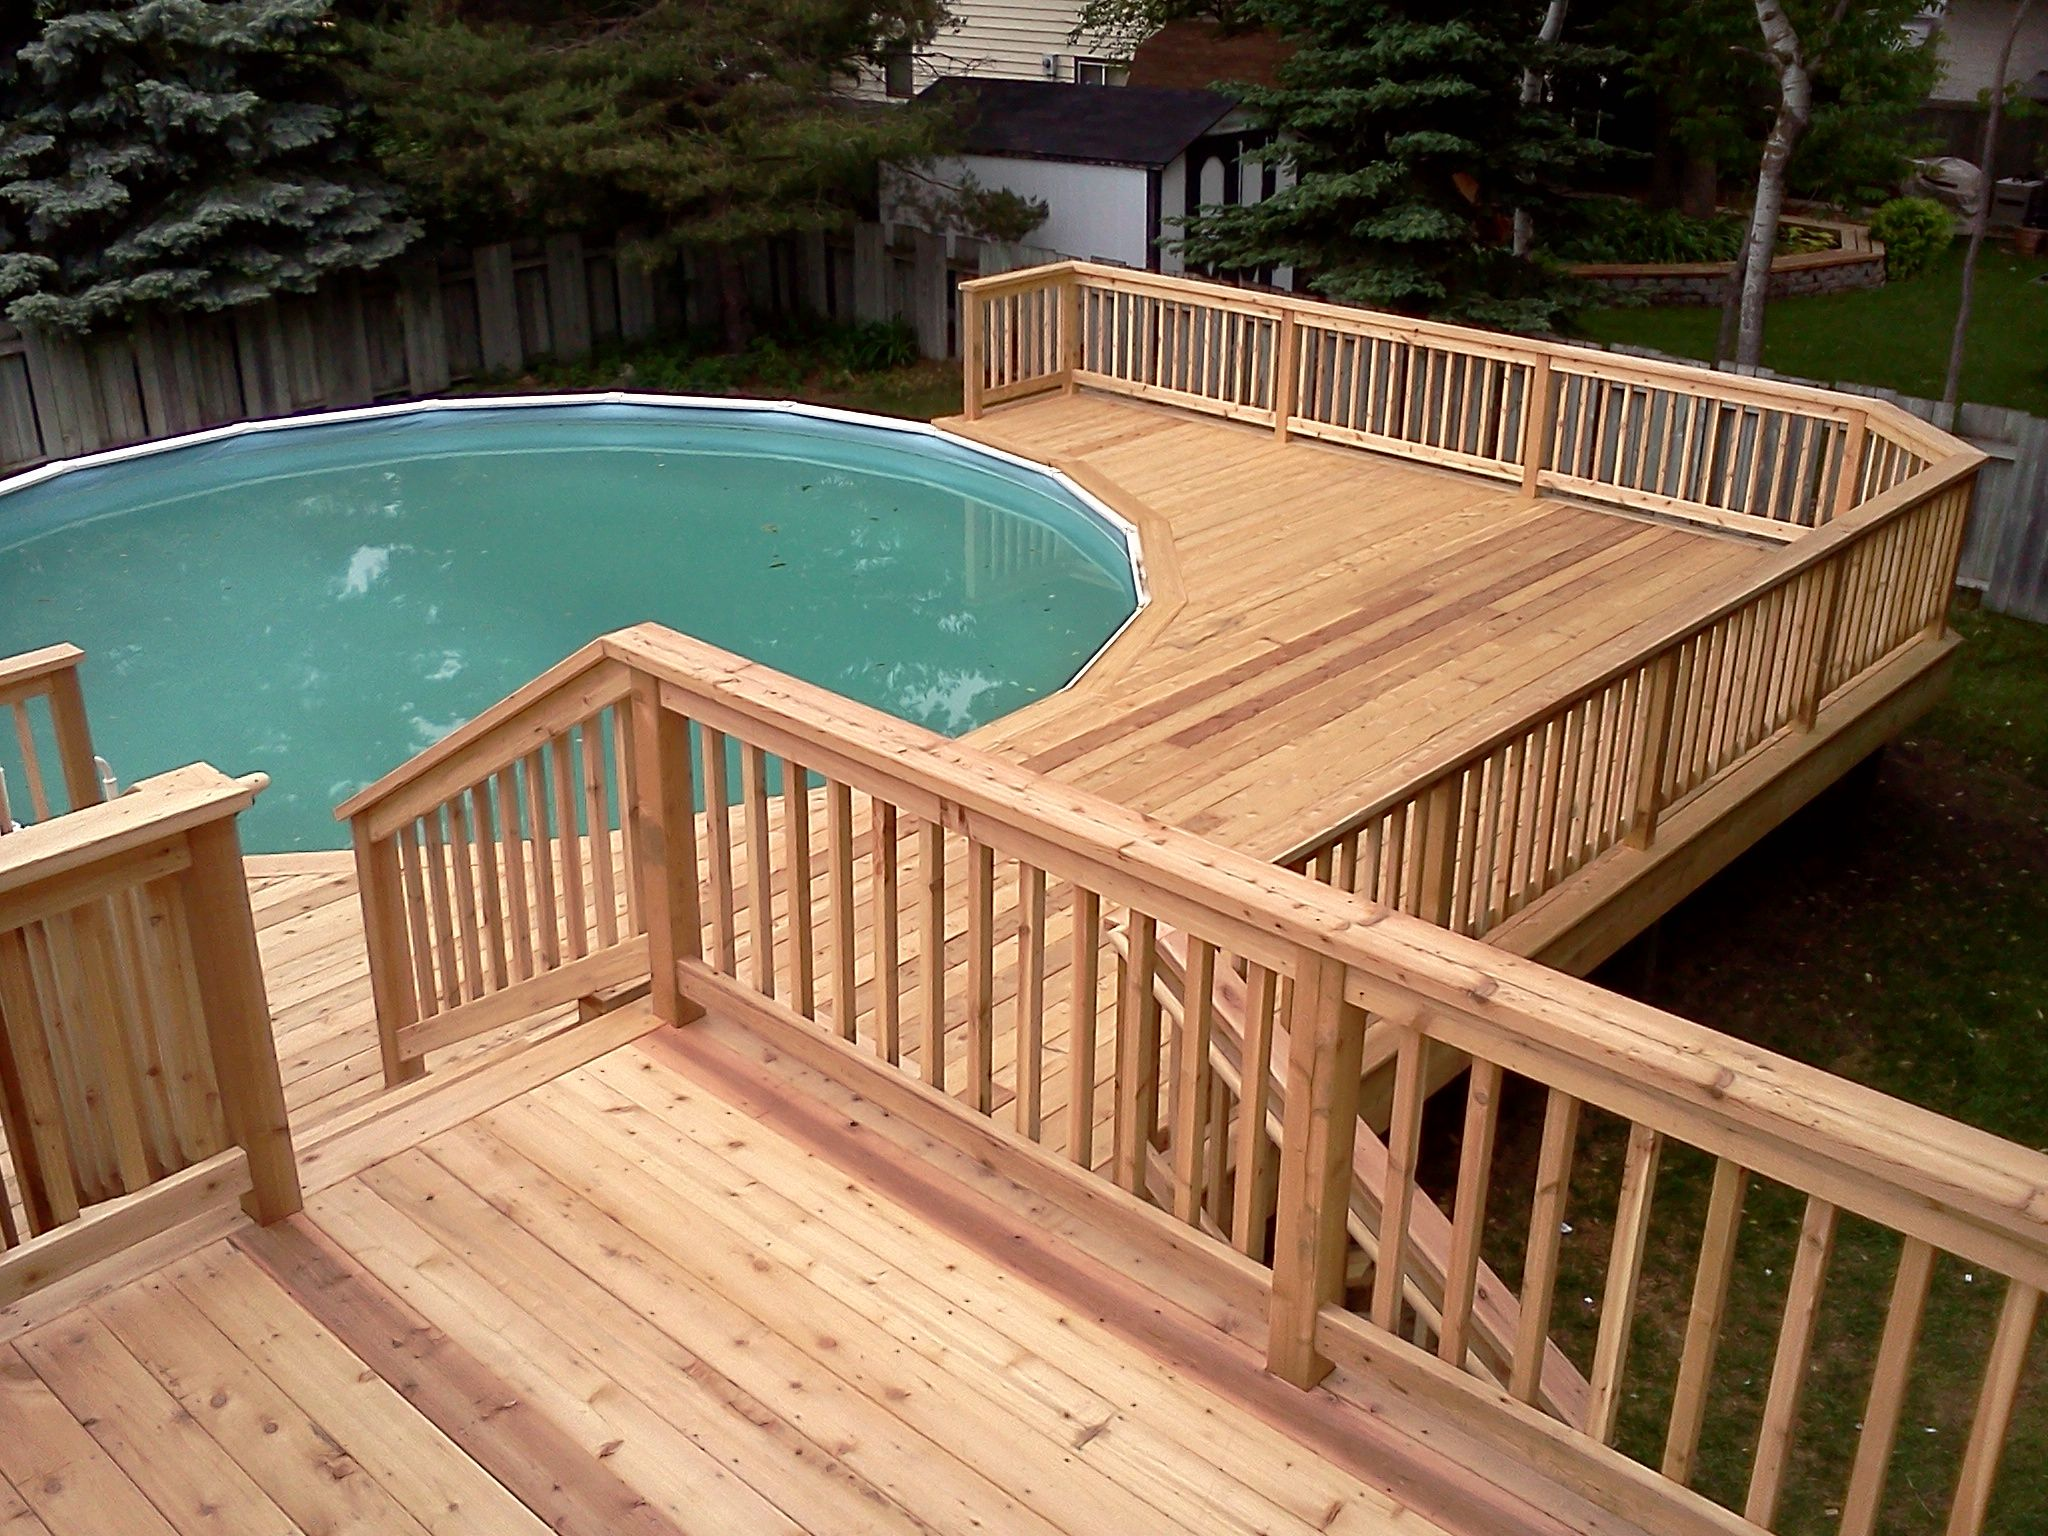 swimming pool Simple Wooden Pool Deck Ideas For Small And Round ...